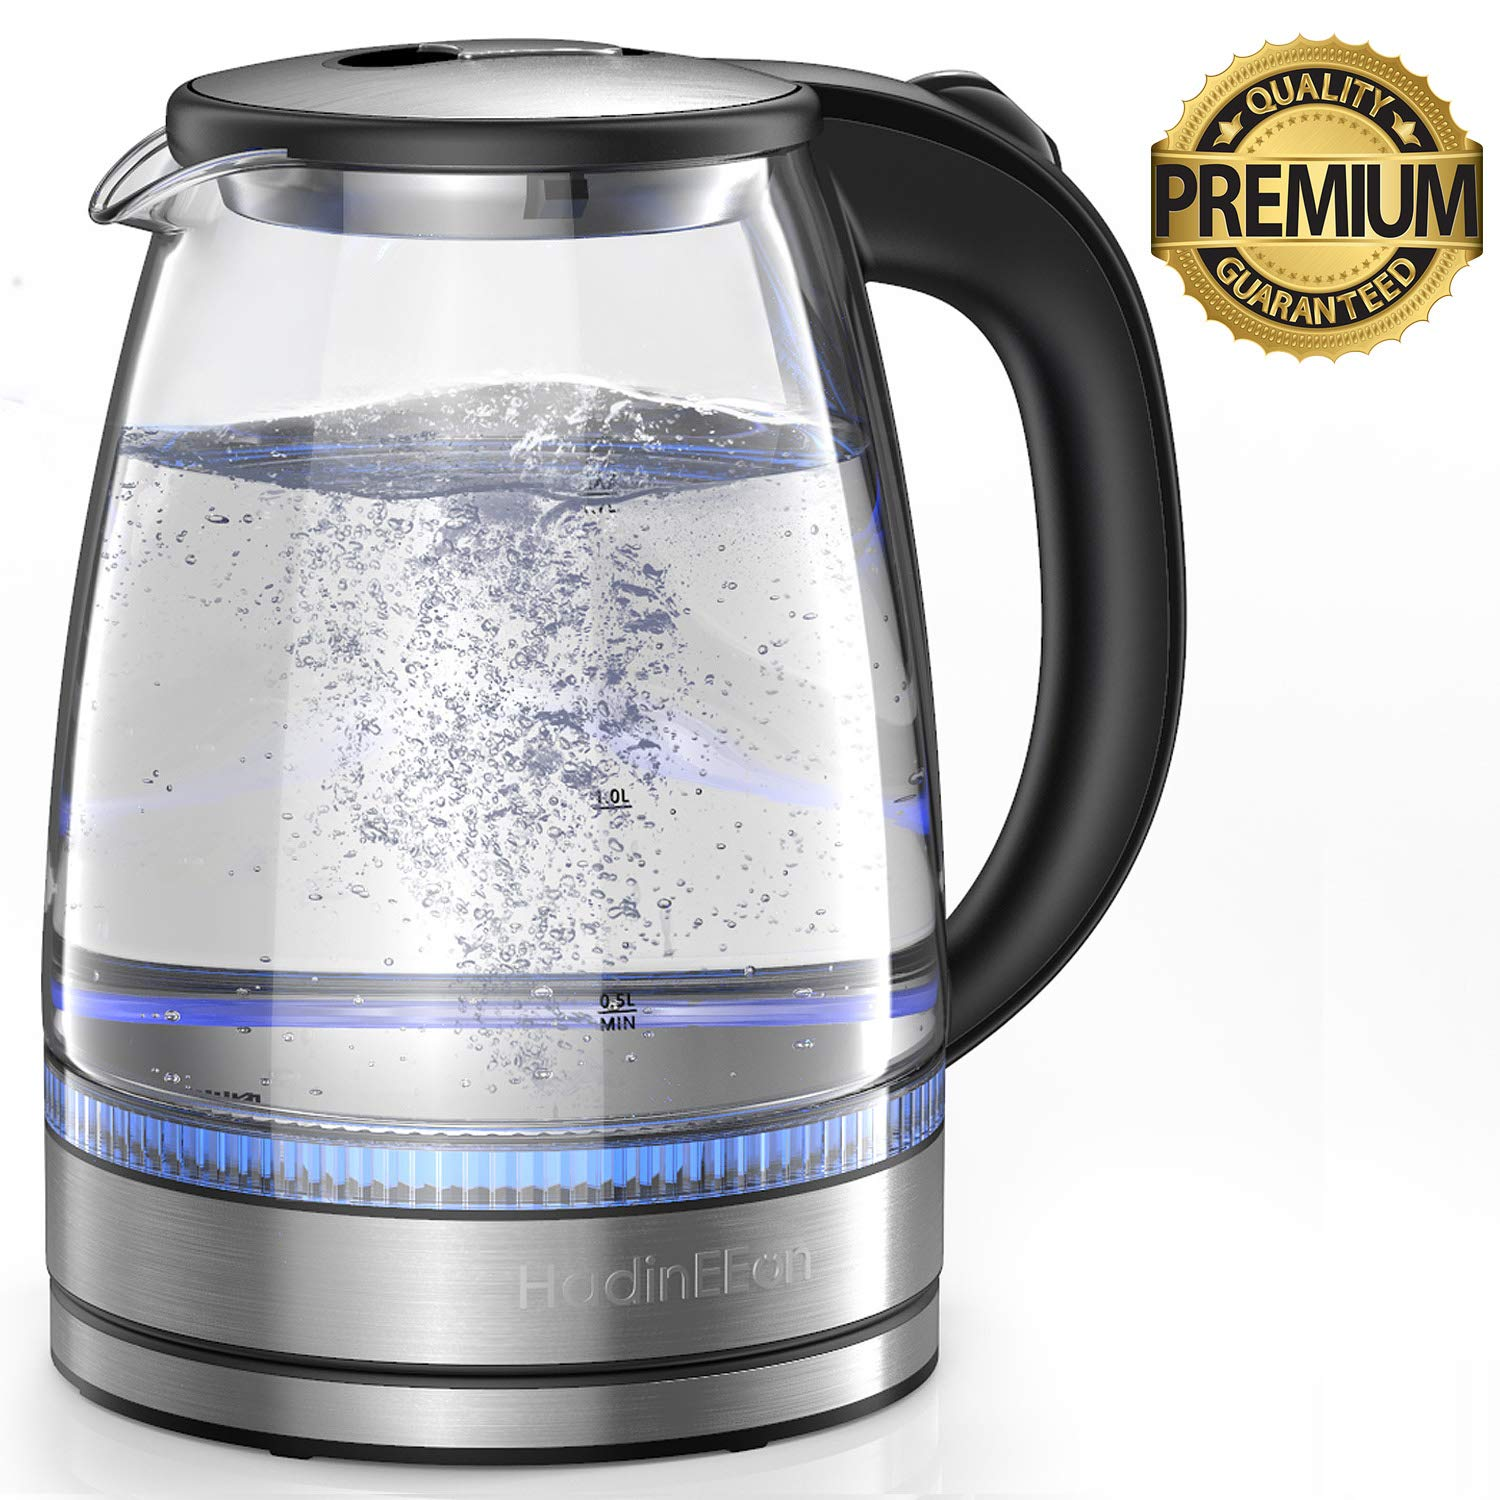 HadinEEon Electric Kettle 1.7L Glass Electric Tea Kettle (BPA Free) Cordless Teapot, Portable Electric Hot Water Kettle with Auto Shutoff Protection, Stainless Steel Lid & Bottom